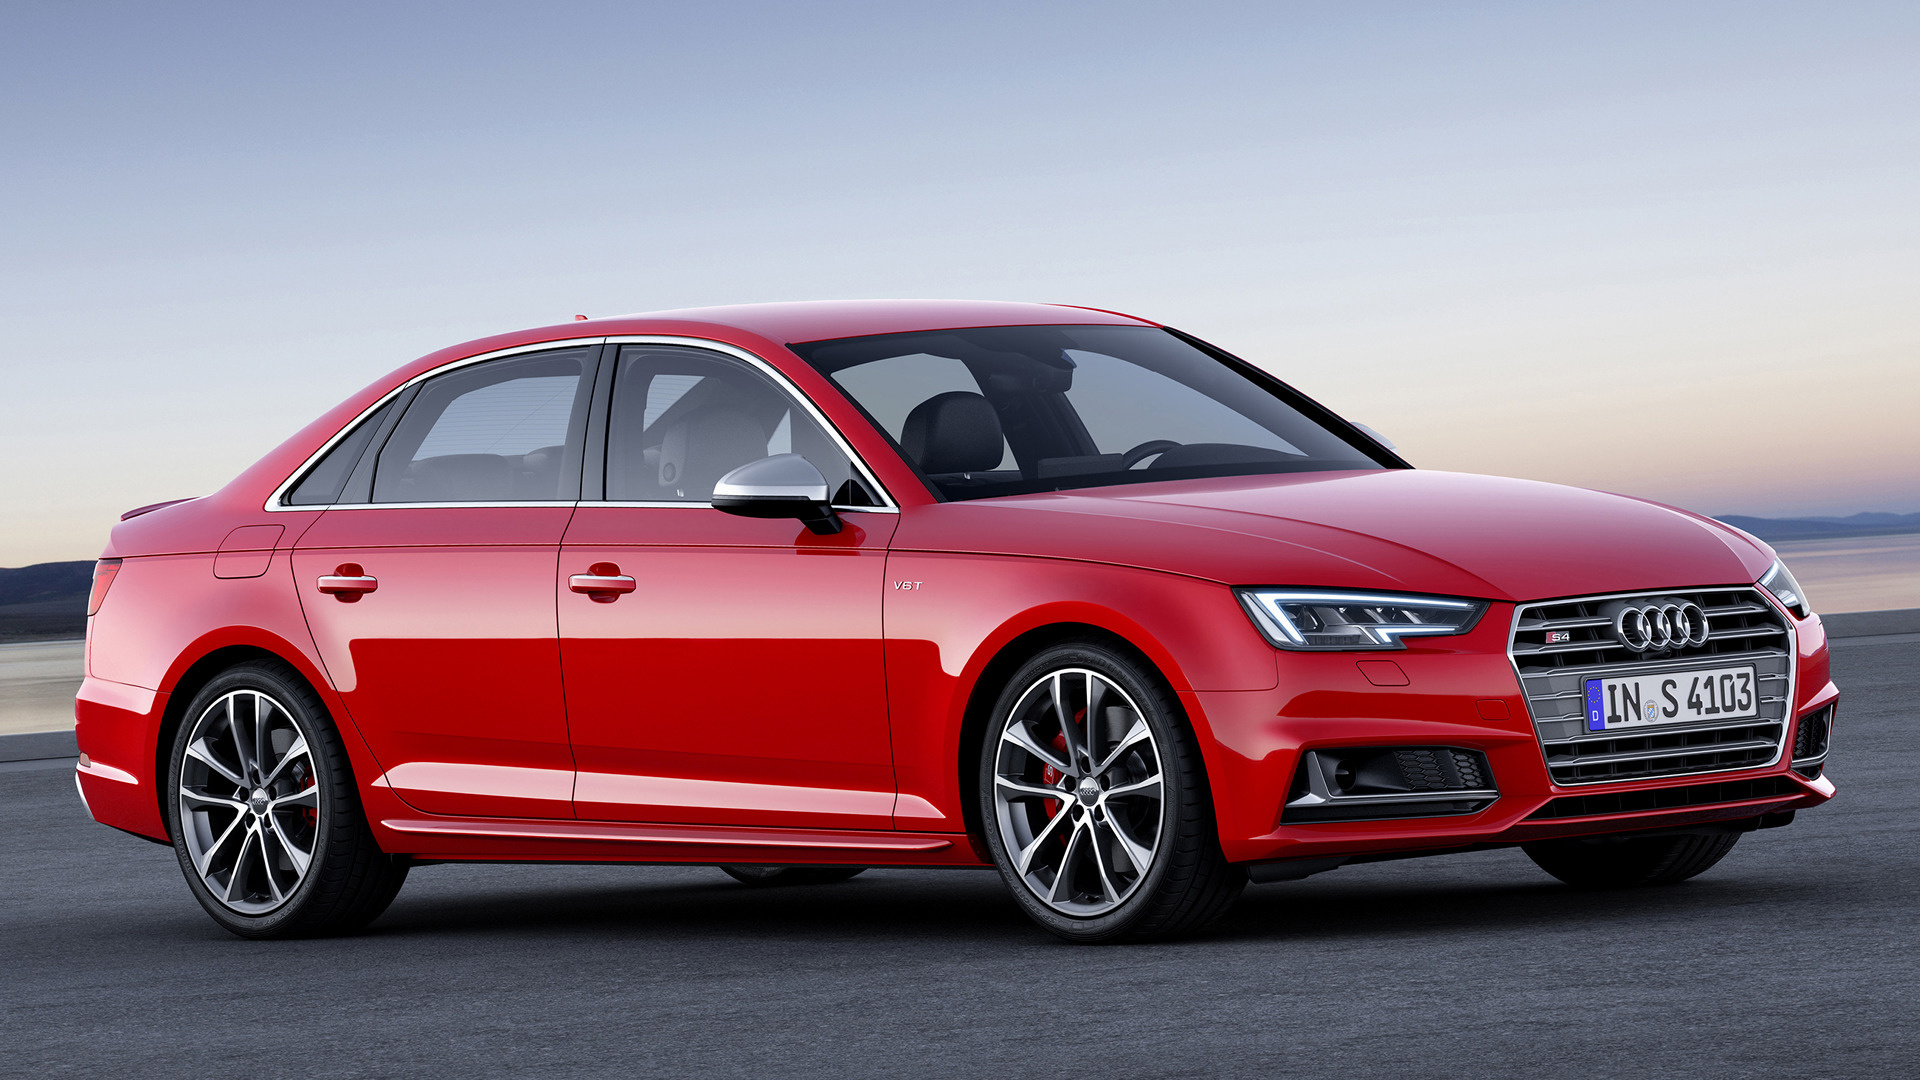 2014 audi s4 wallpaper - photo #45